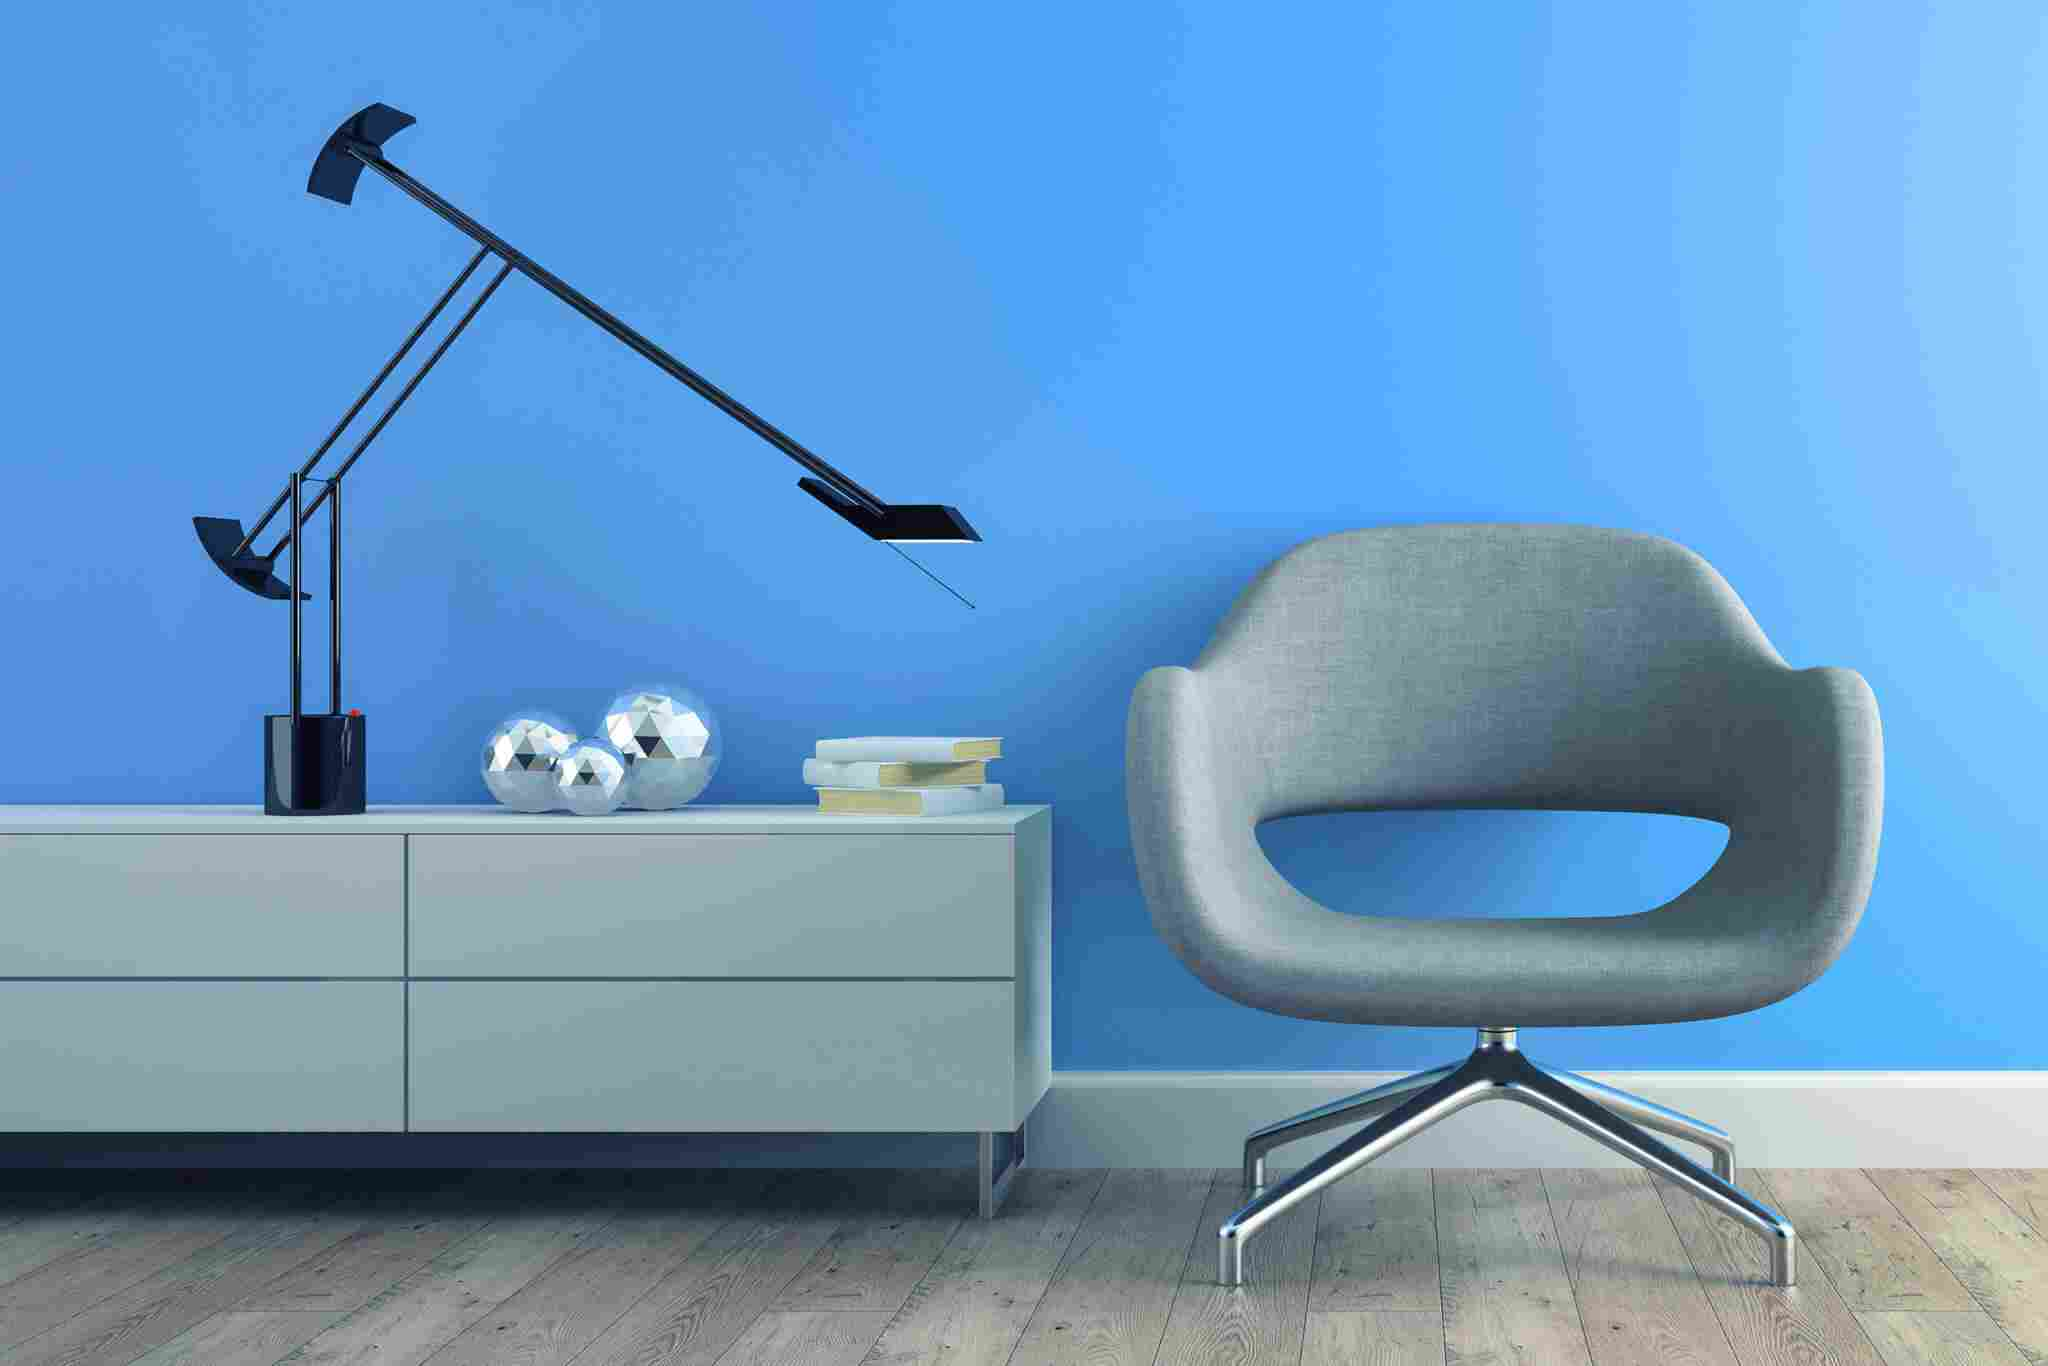 http://www.pikade.com/wp-content/uploads/2017/05/image-chair-blue-wall.jpg